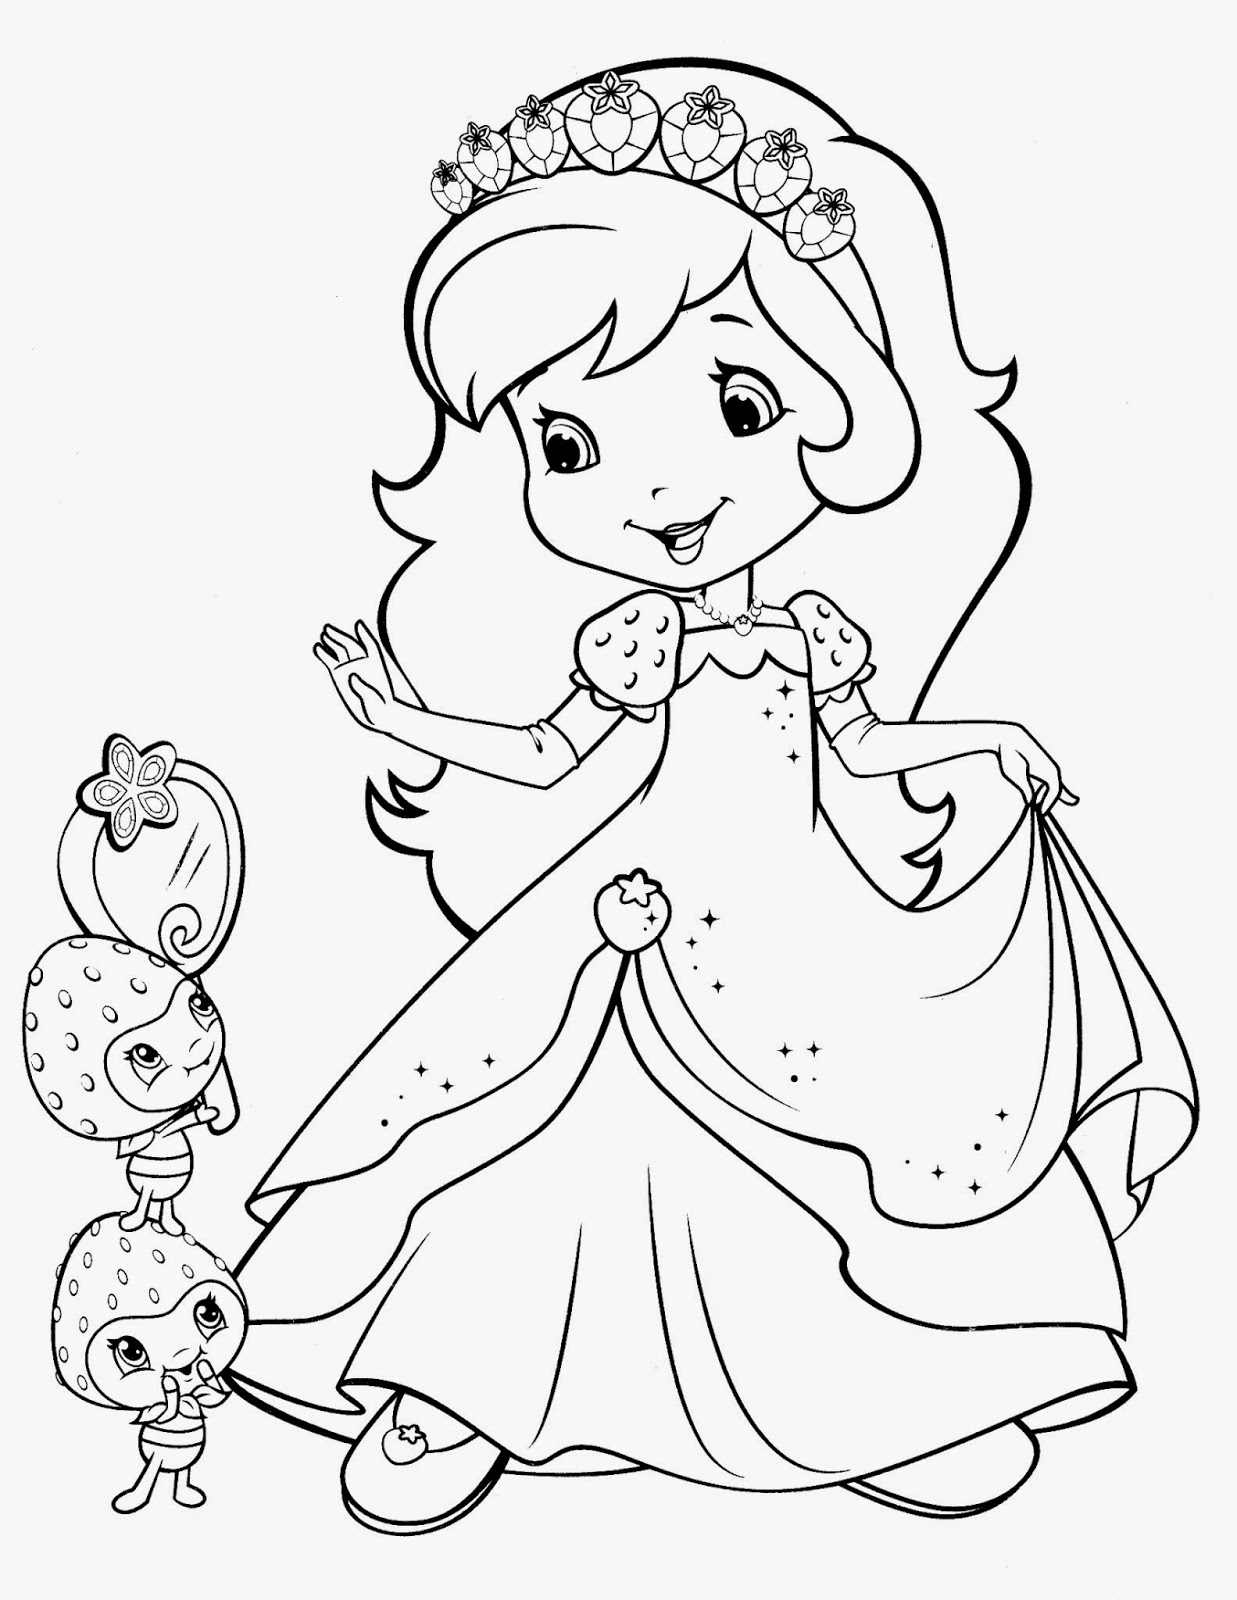 Free Coloring Pages Of Strawberry Strawberry Shortcake Colouring Pages